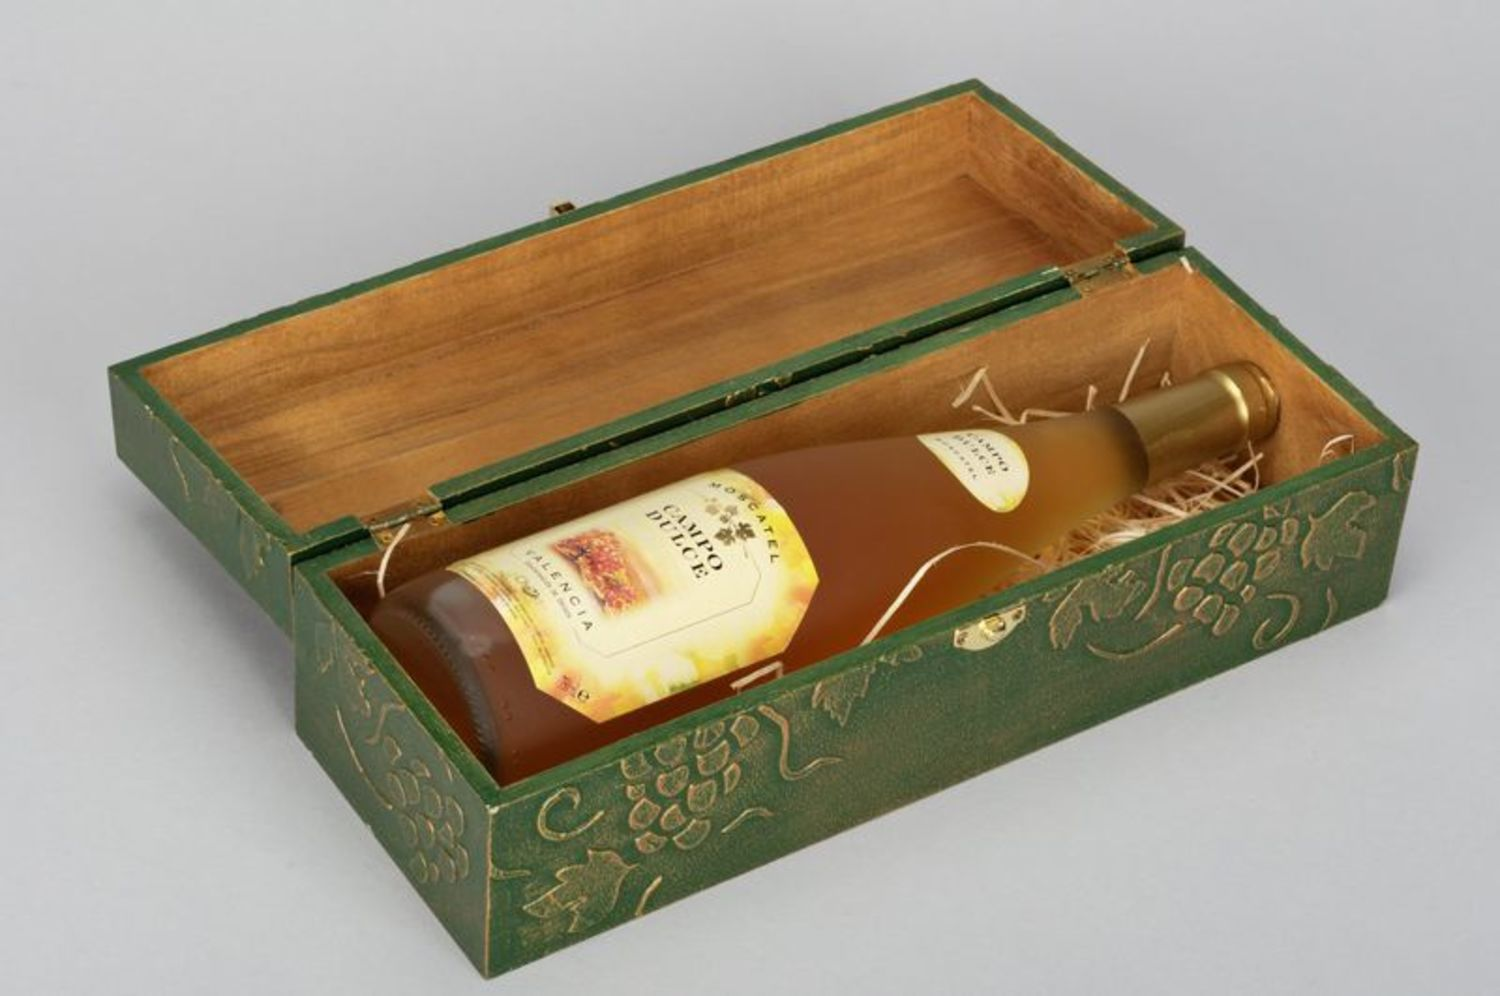 Box for a bottle photo 1